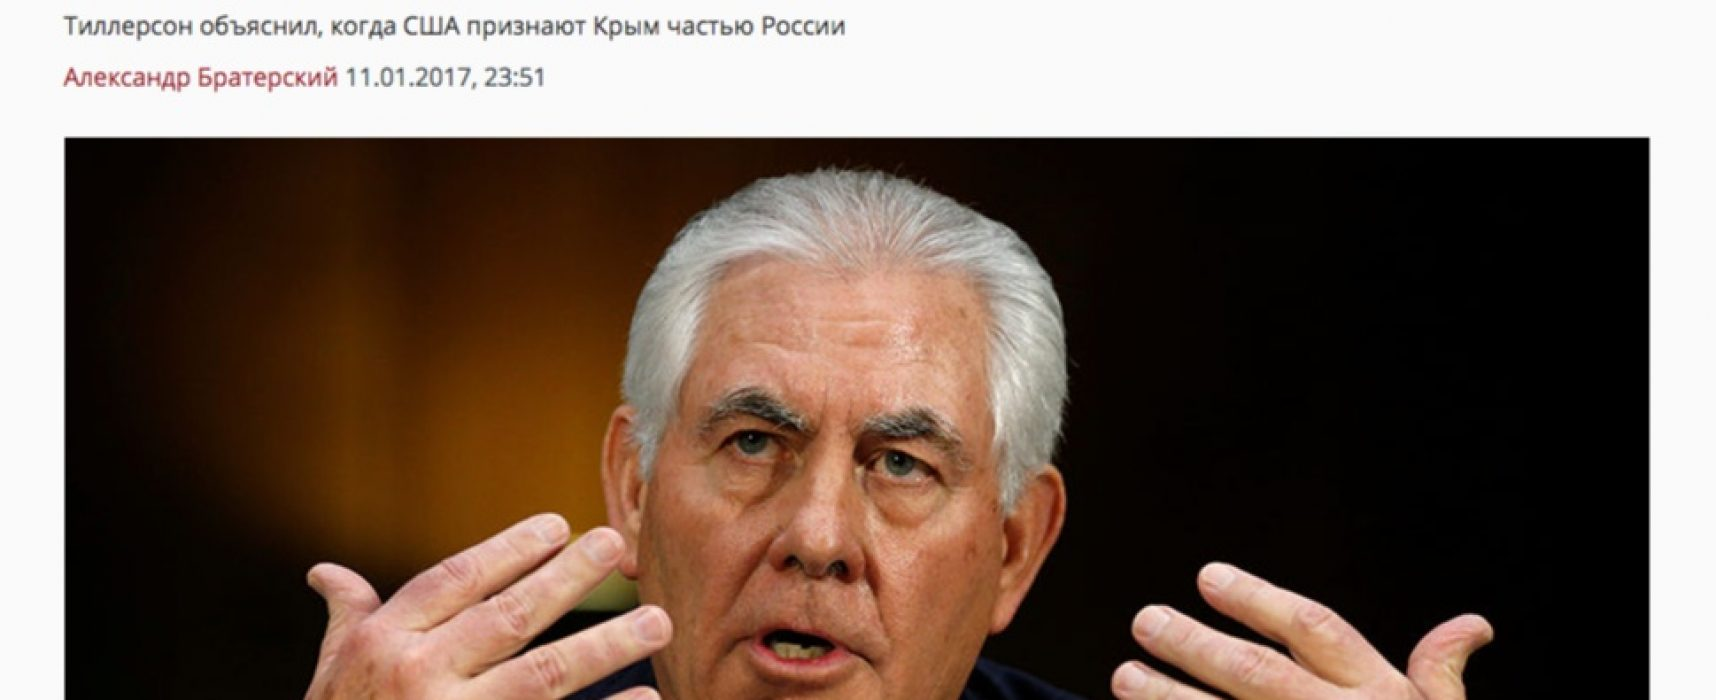 Fake: Tillerson Names Conditions under Which Crimea Would Be Recognized as Russian